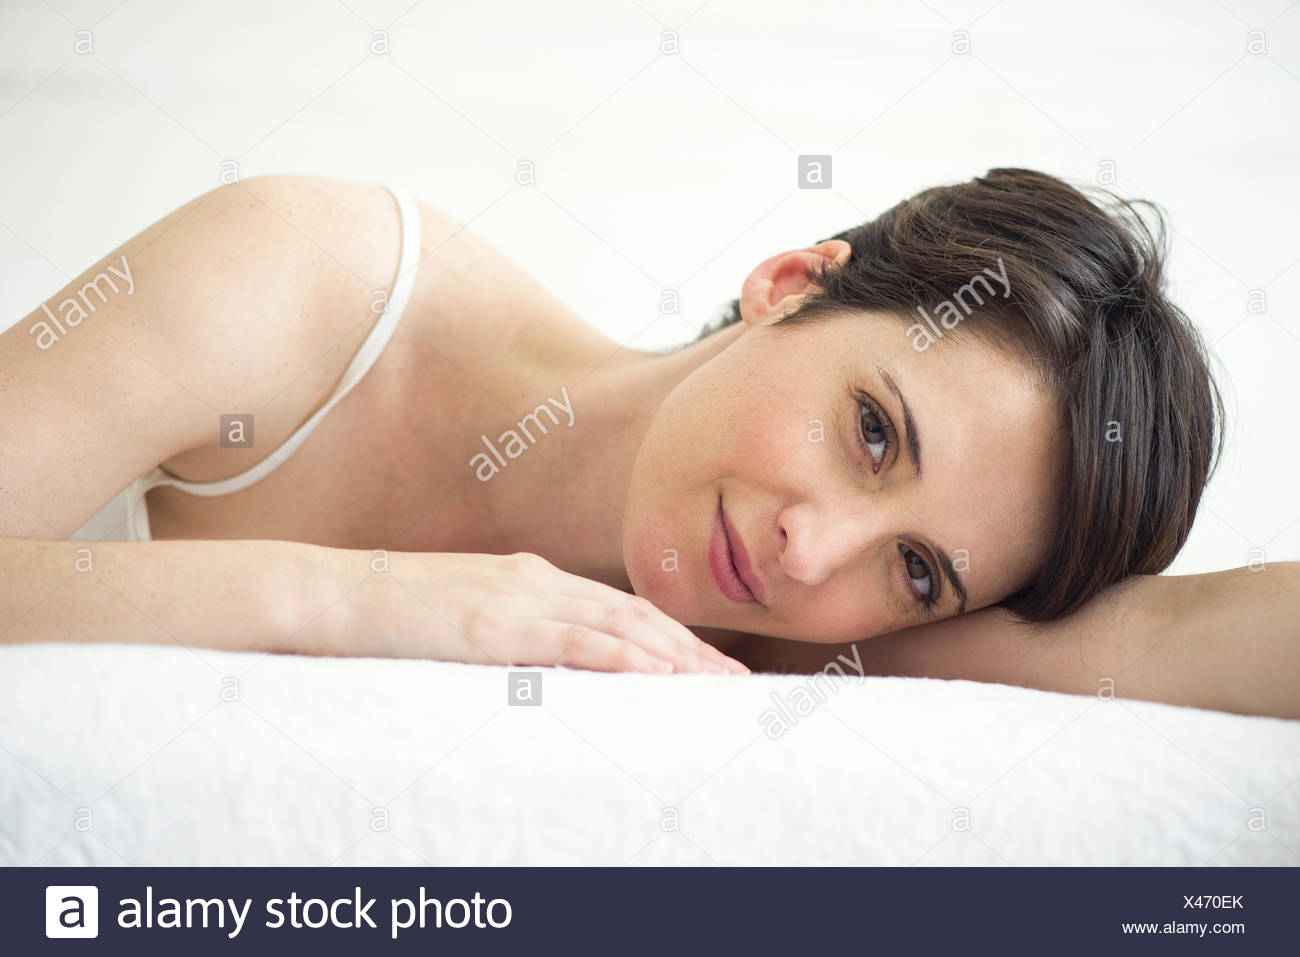 Woman resting on bed, portrait - Stock Image